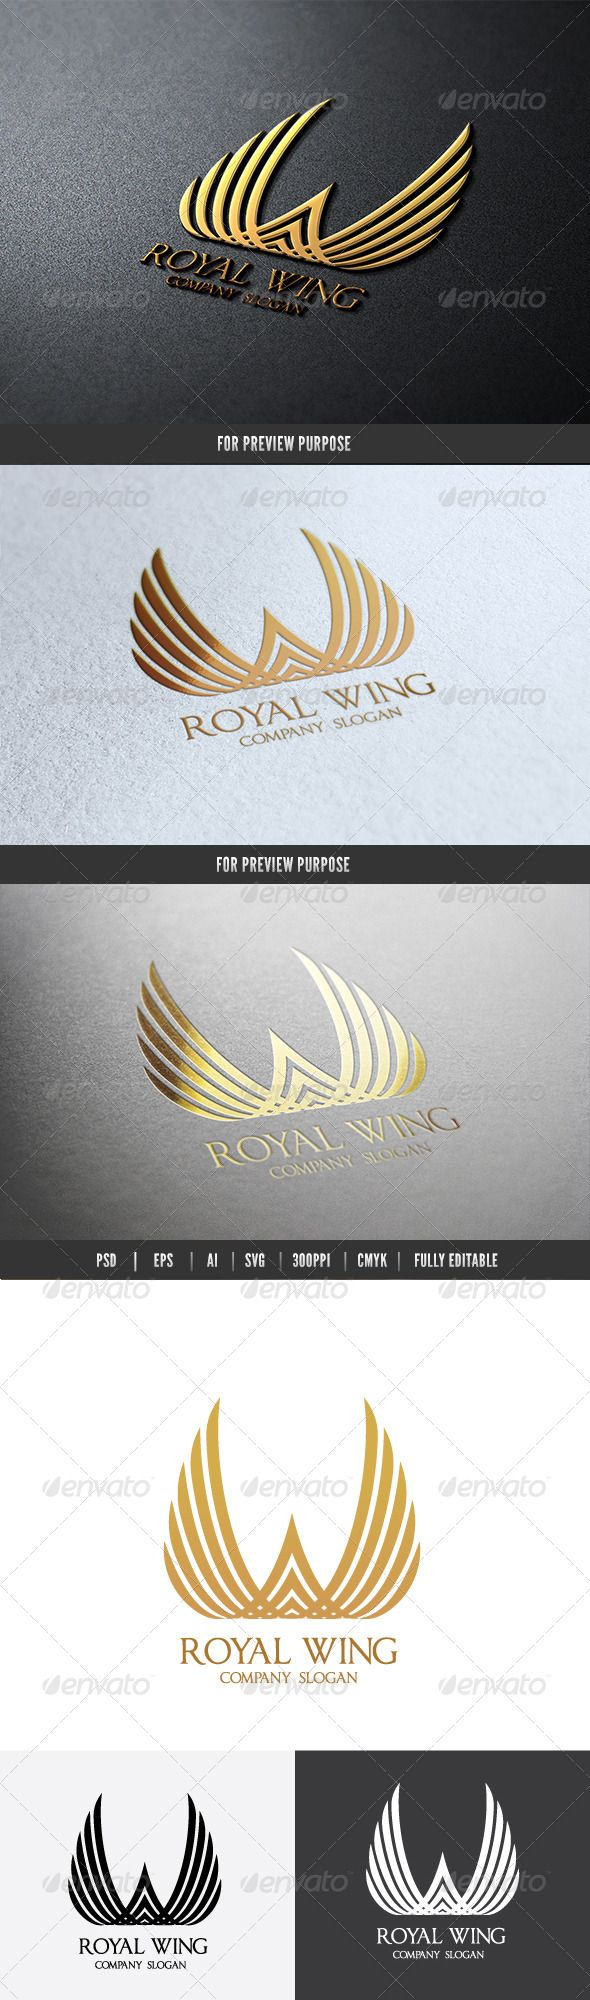 Royal Wing II — Photoshop PSD #phoenix #birth • Available here → https://graphicriver.net/item/royal-wing-ii/6552760?ref=pxcr